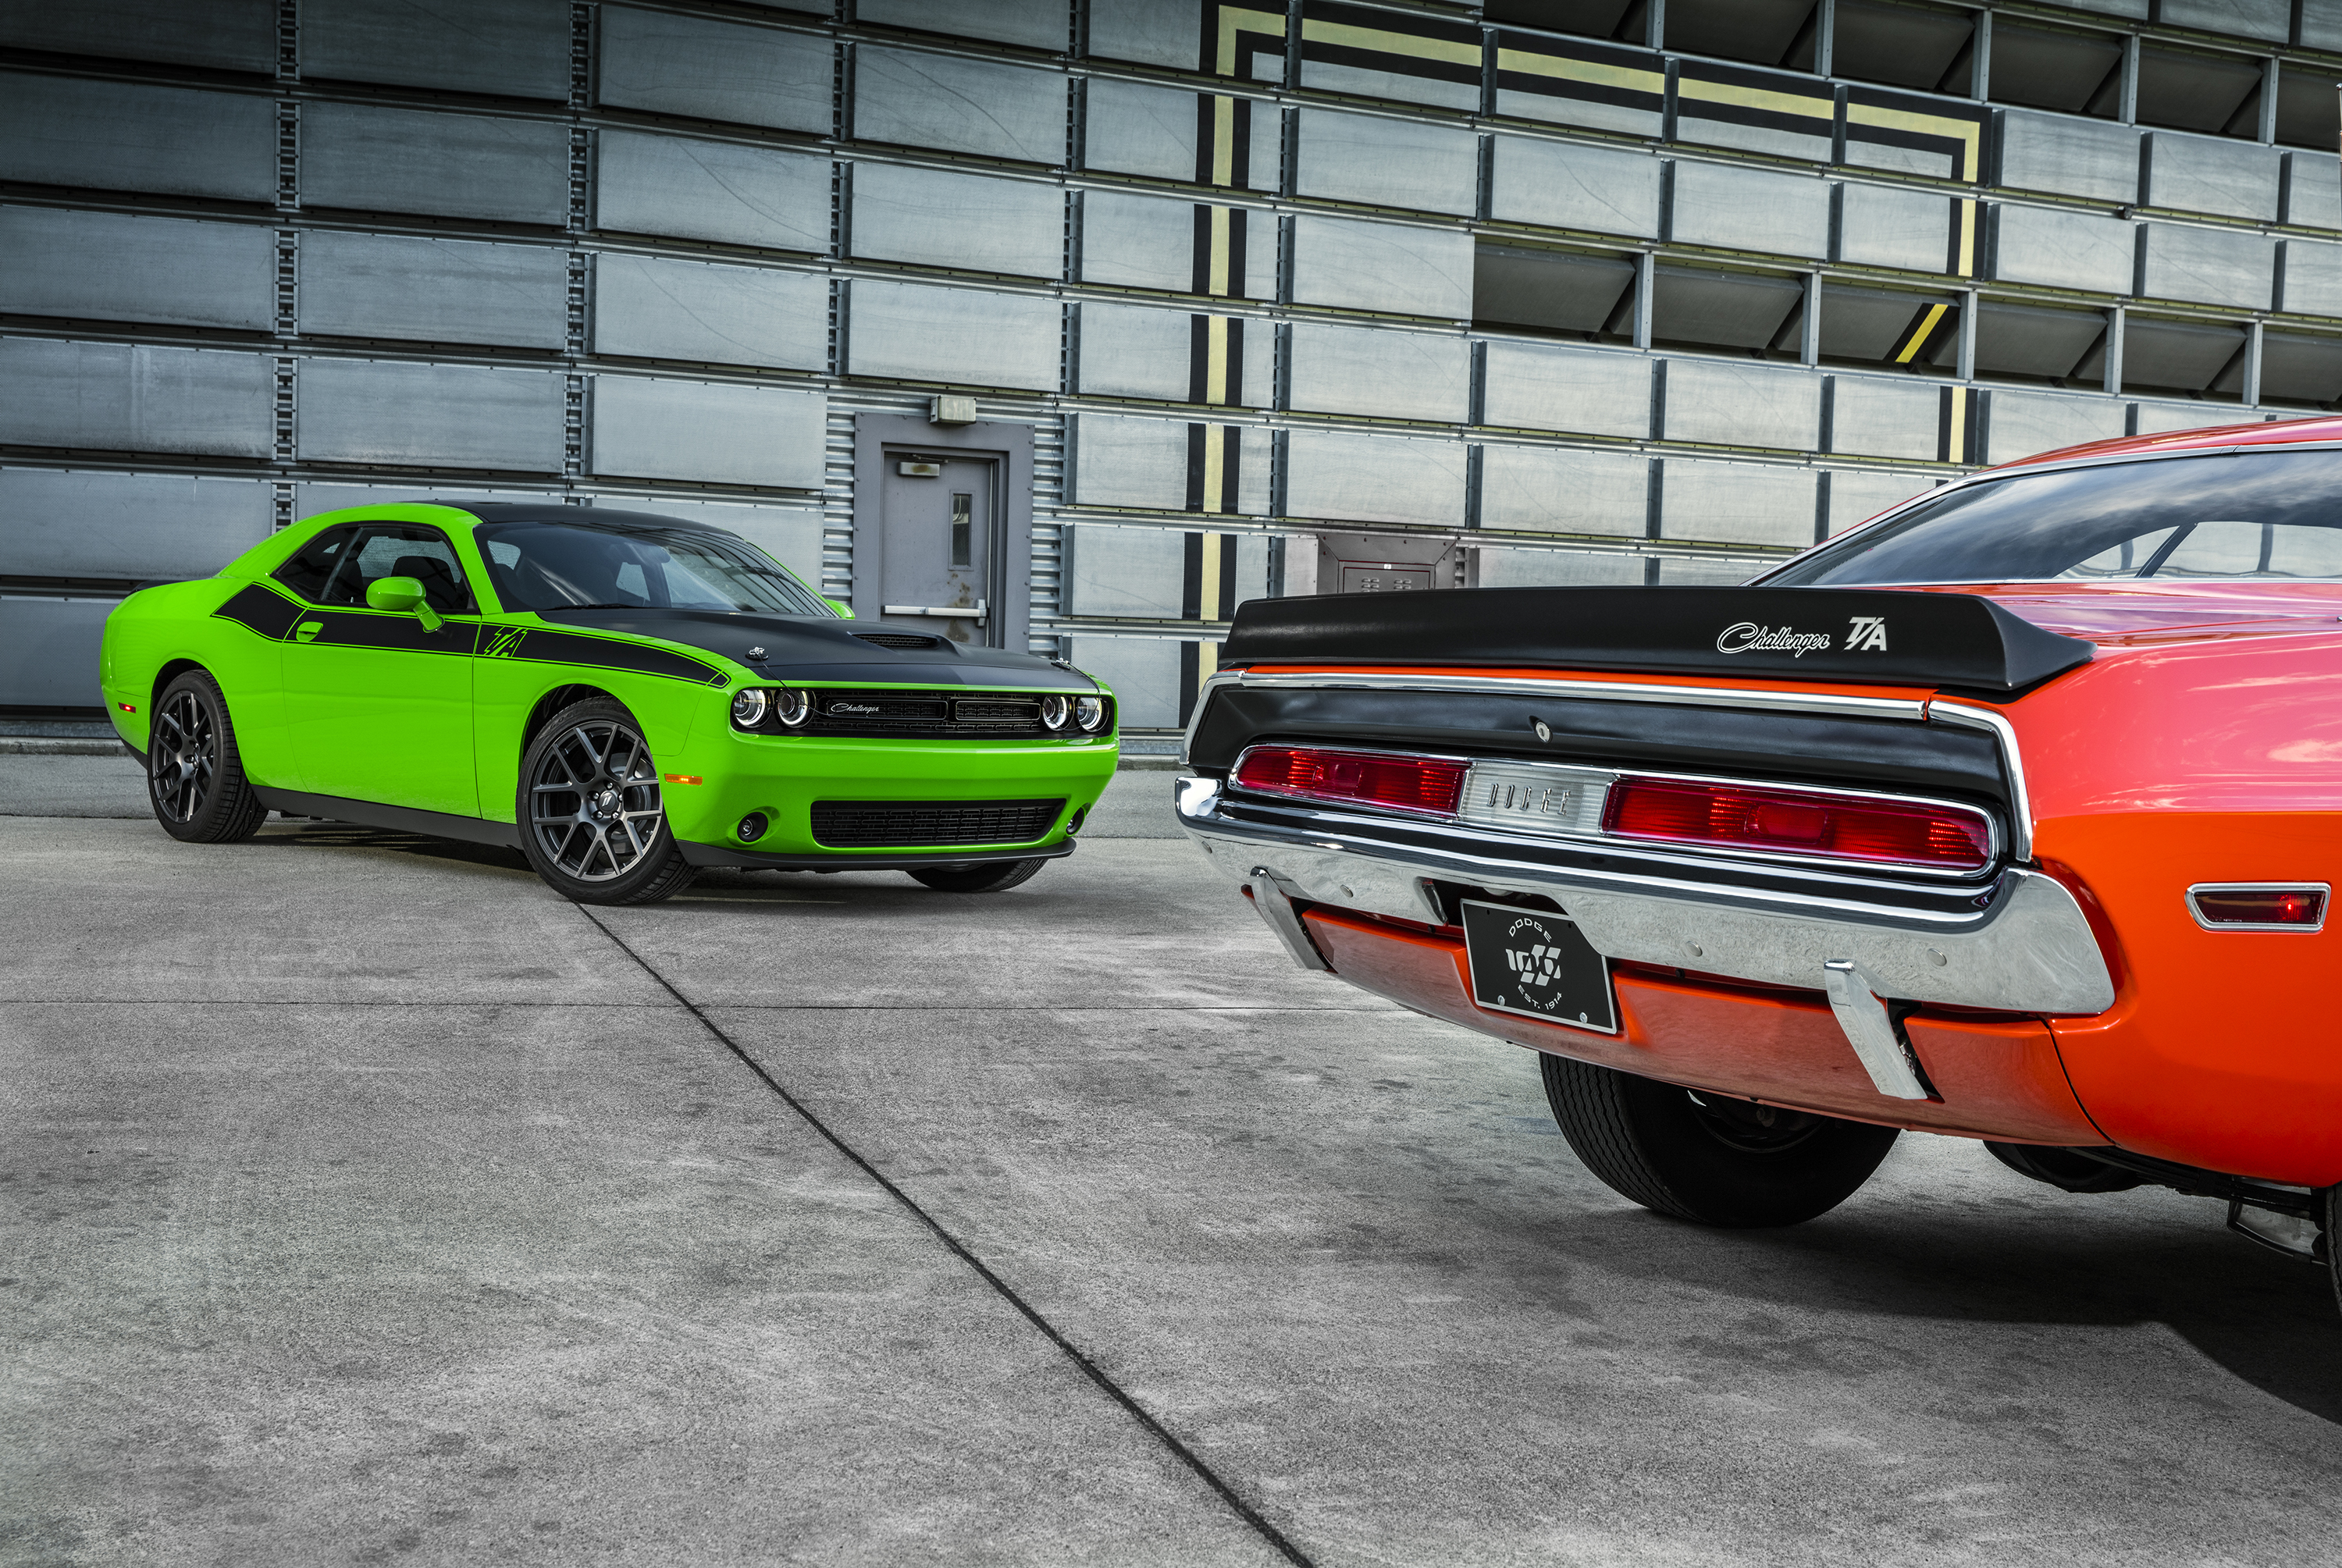 2017 Dodge Challenger T/A (left) and 1970 Dodge Challenger T/A (